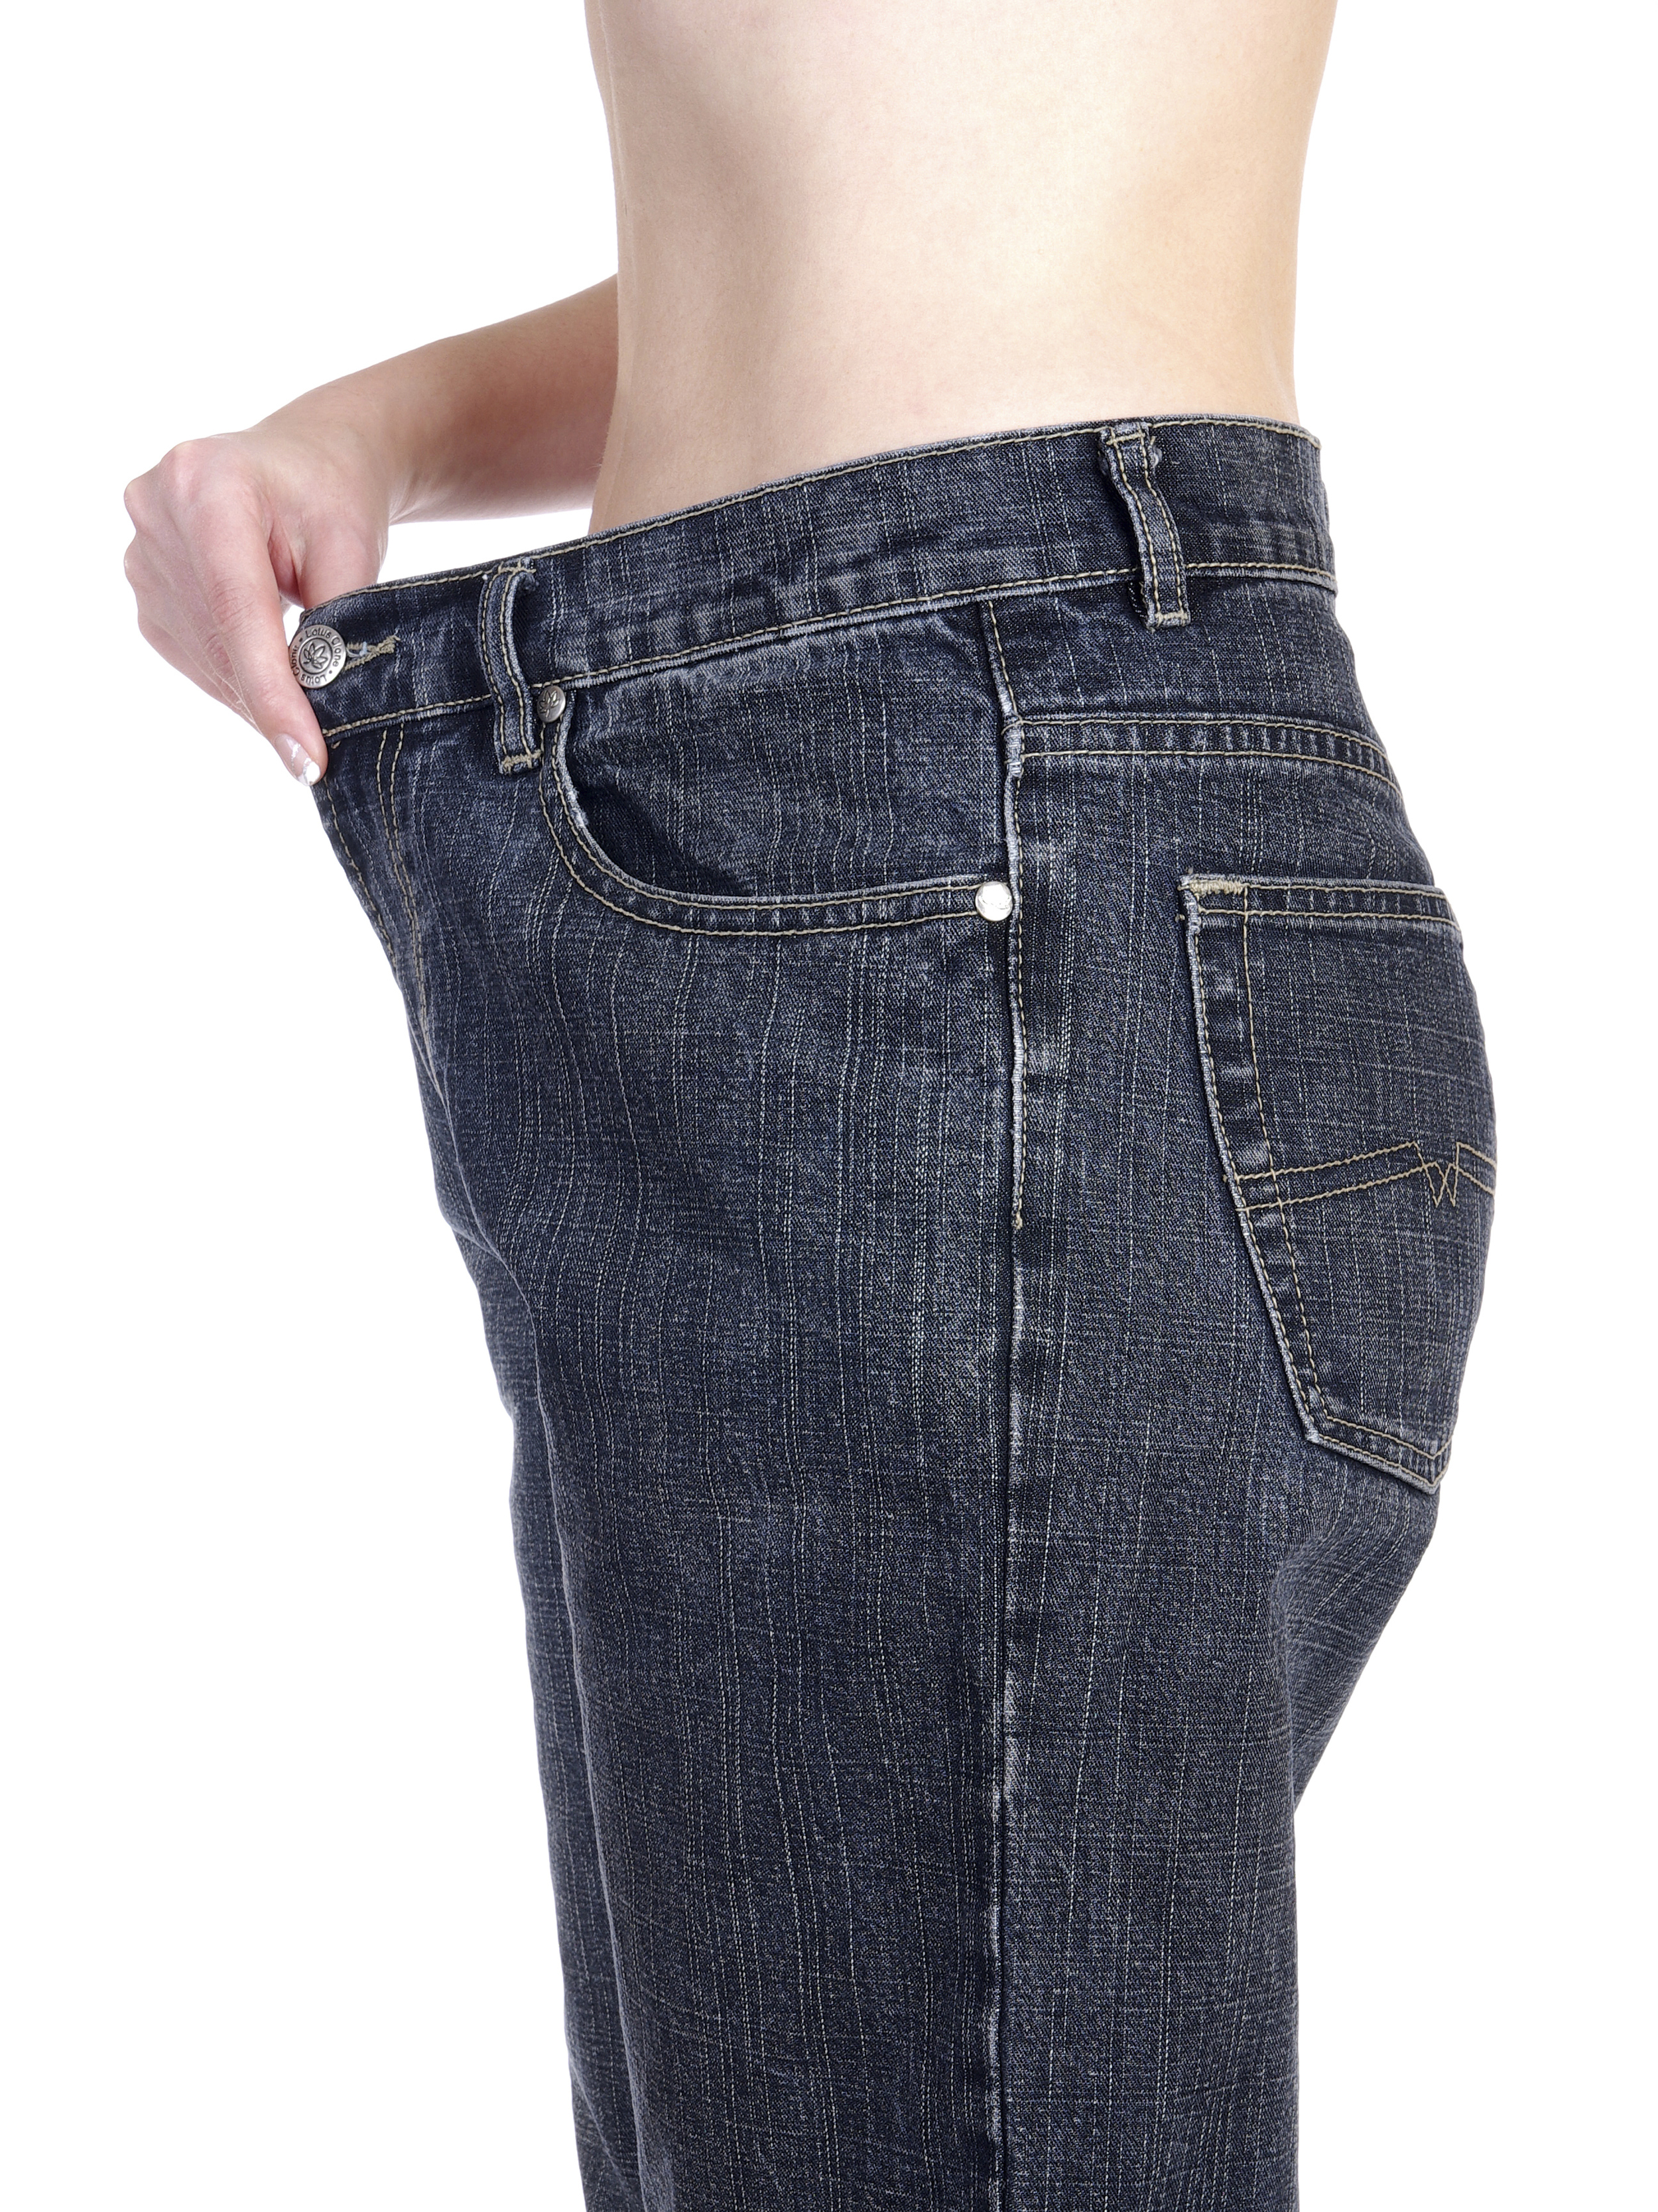 Lose weight now with help from hypnotherapy